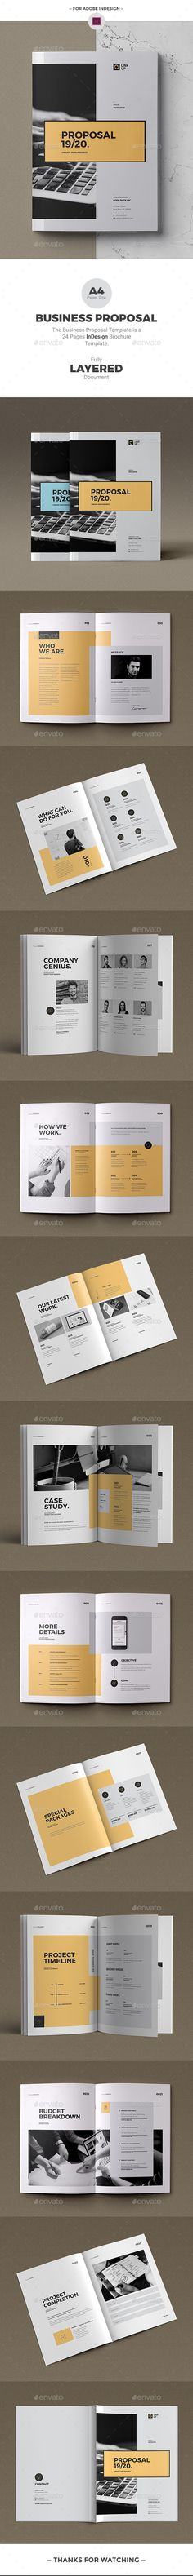 Propsoal - Proposals & Invoices Stationery